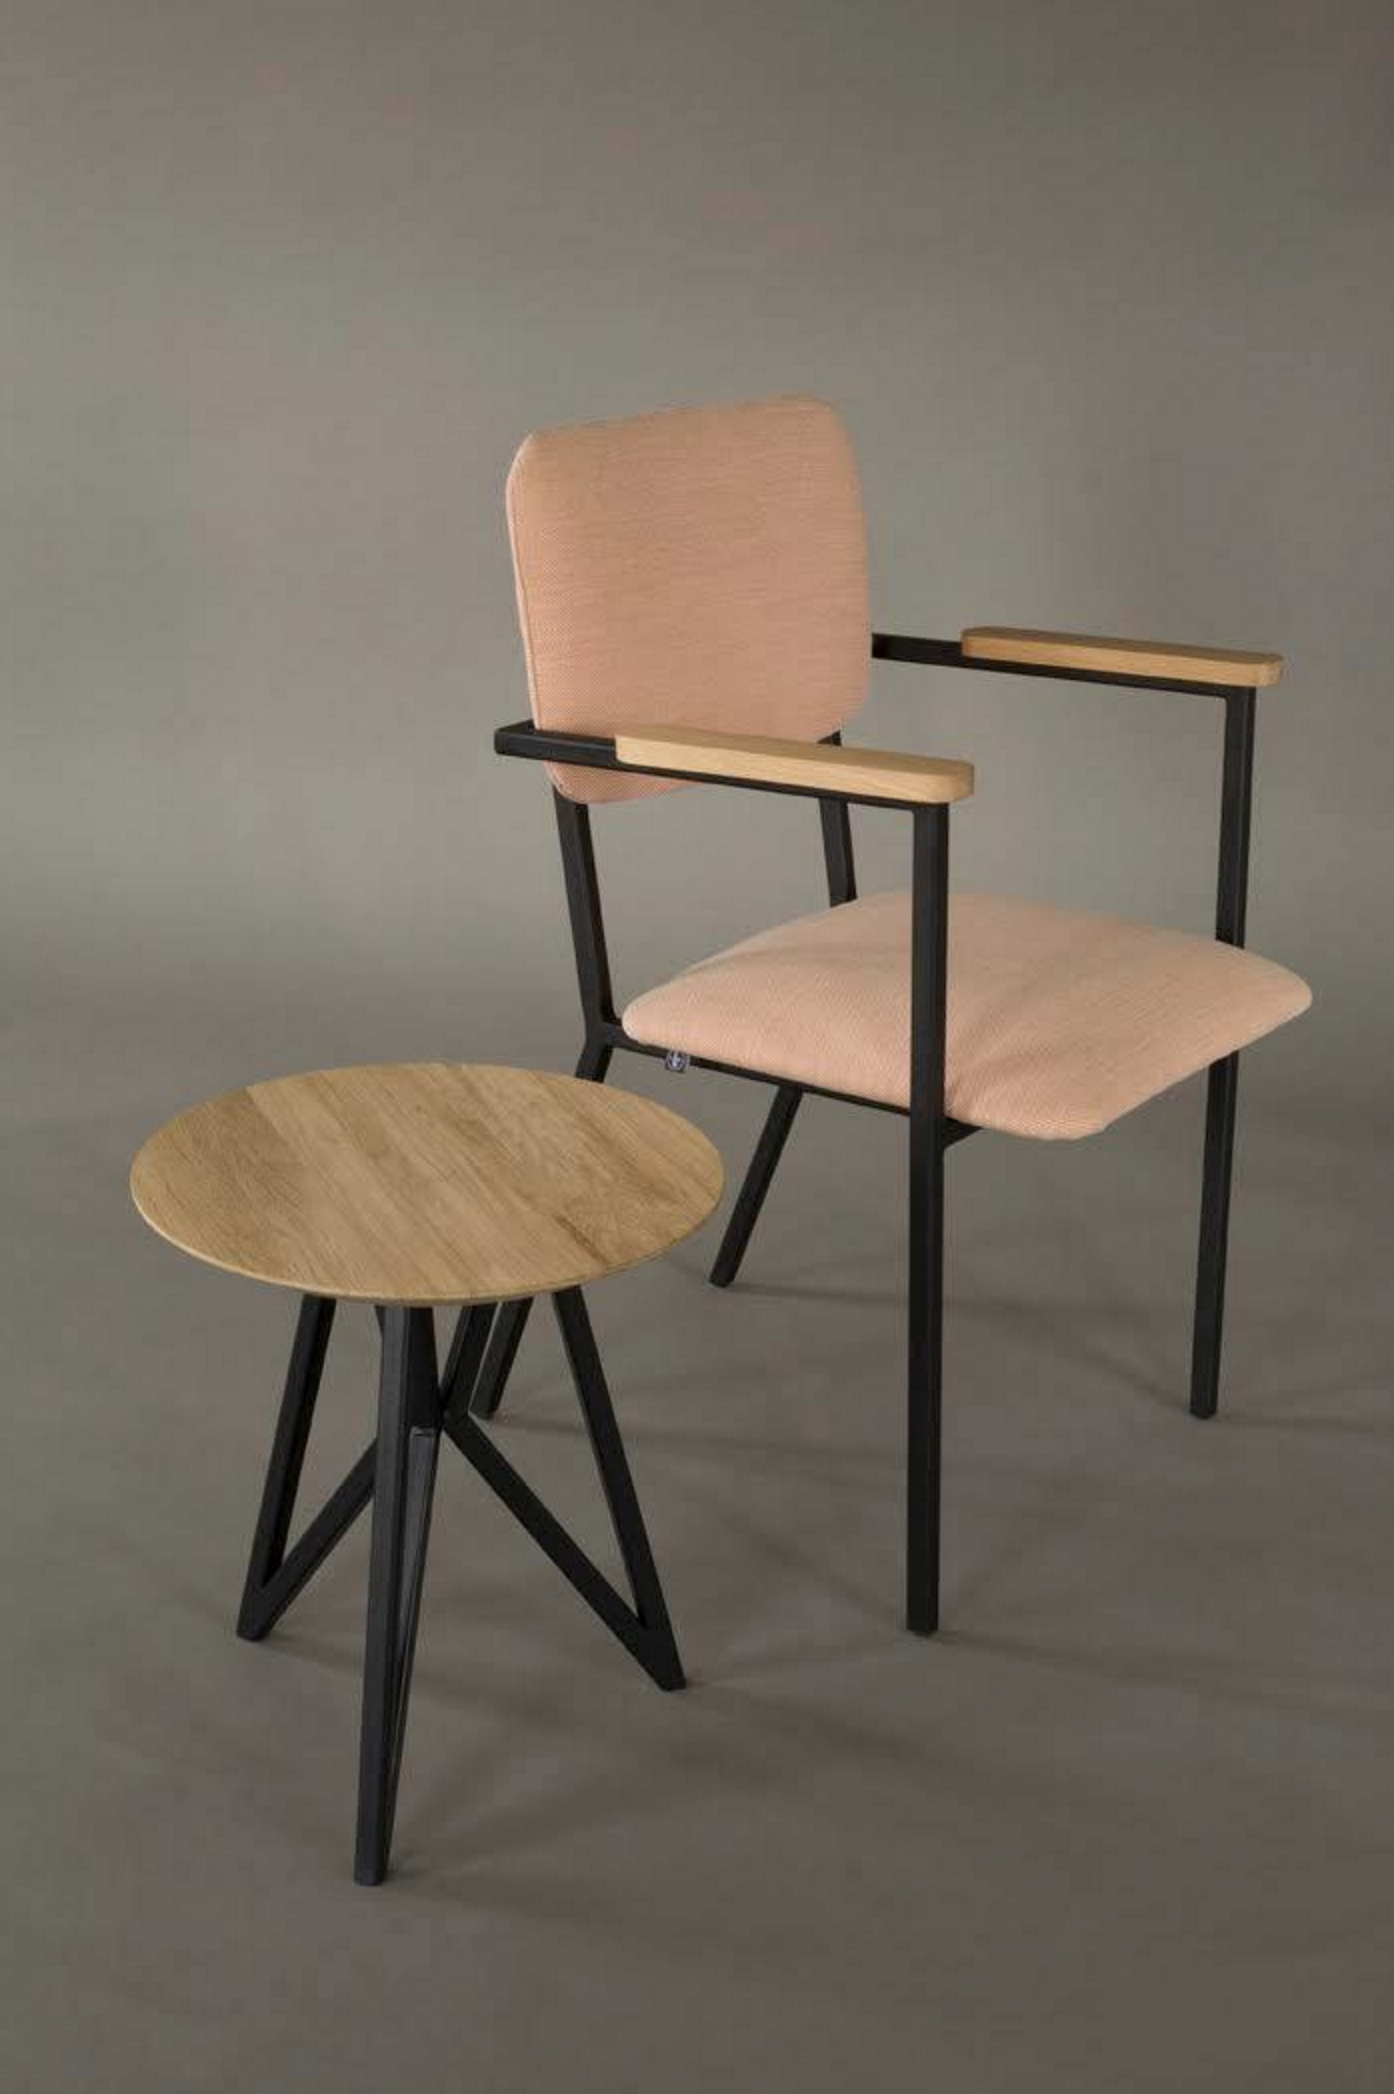 Design Stoelen Nederland.Co Design Stoel Chair Butterfly Kruk Stool Coffee Table Studio H K